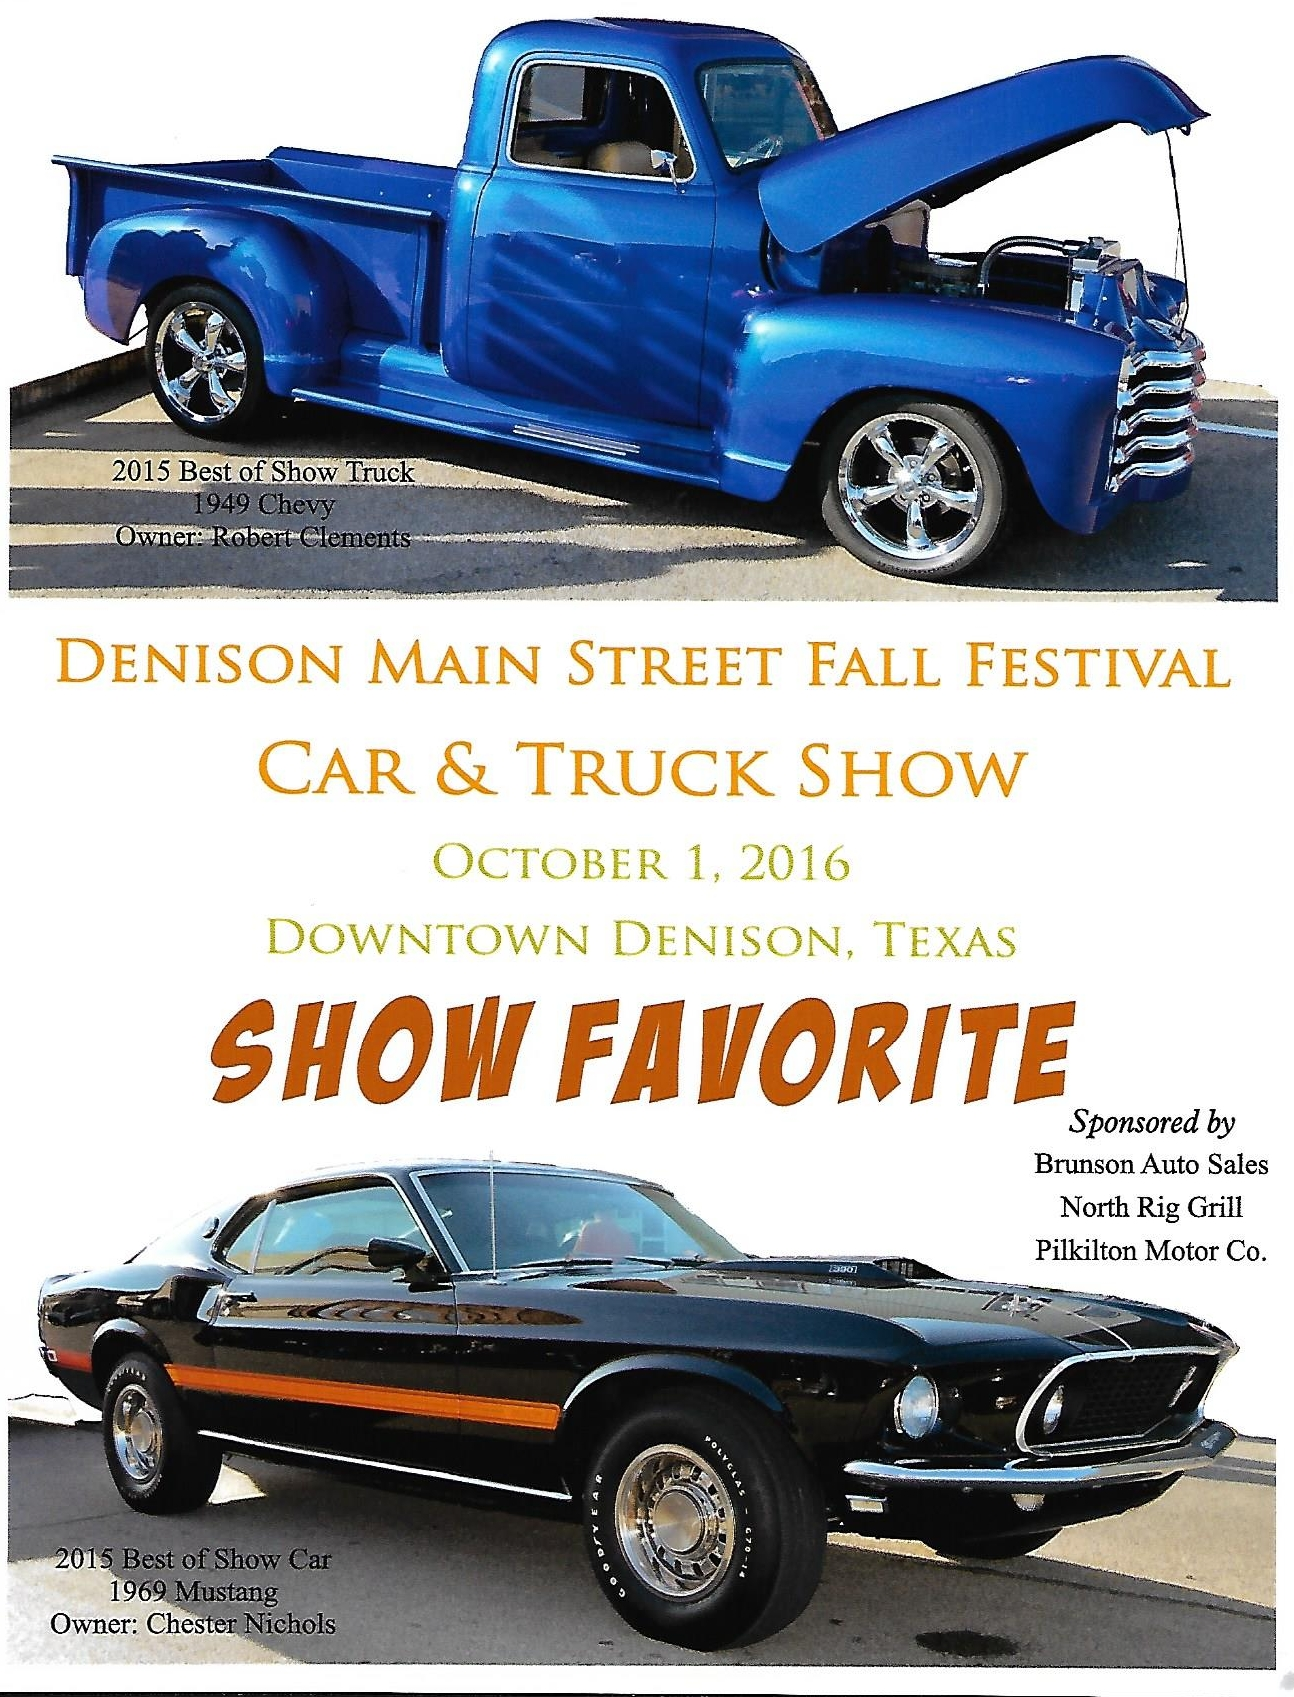 Denison Main Street Fall Festival Car & Truck Show Award for Show Favorite